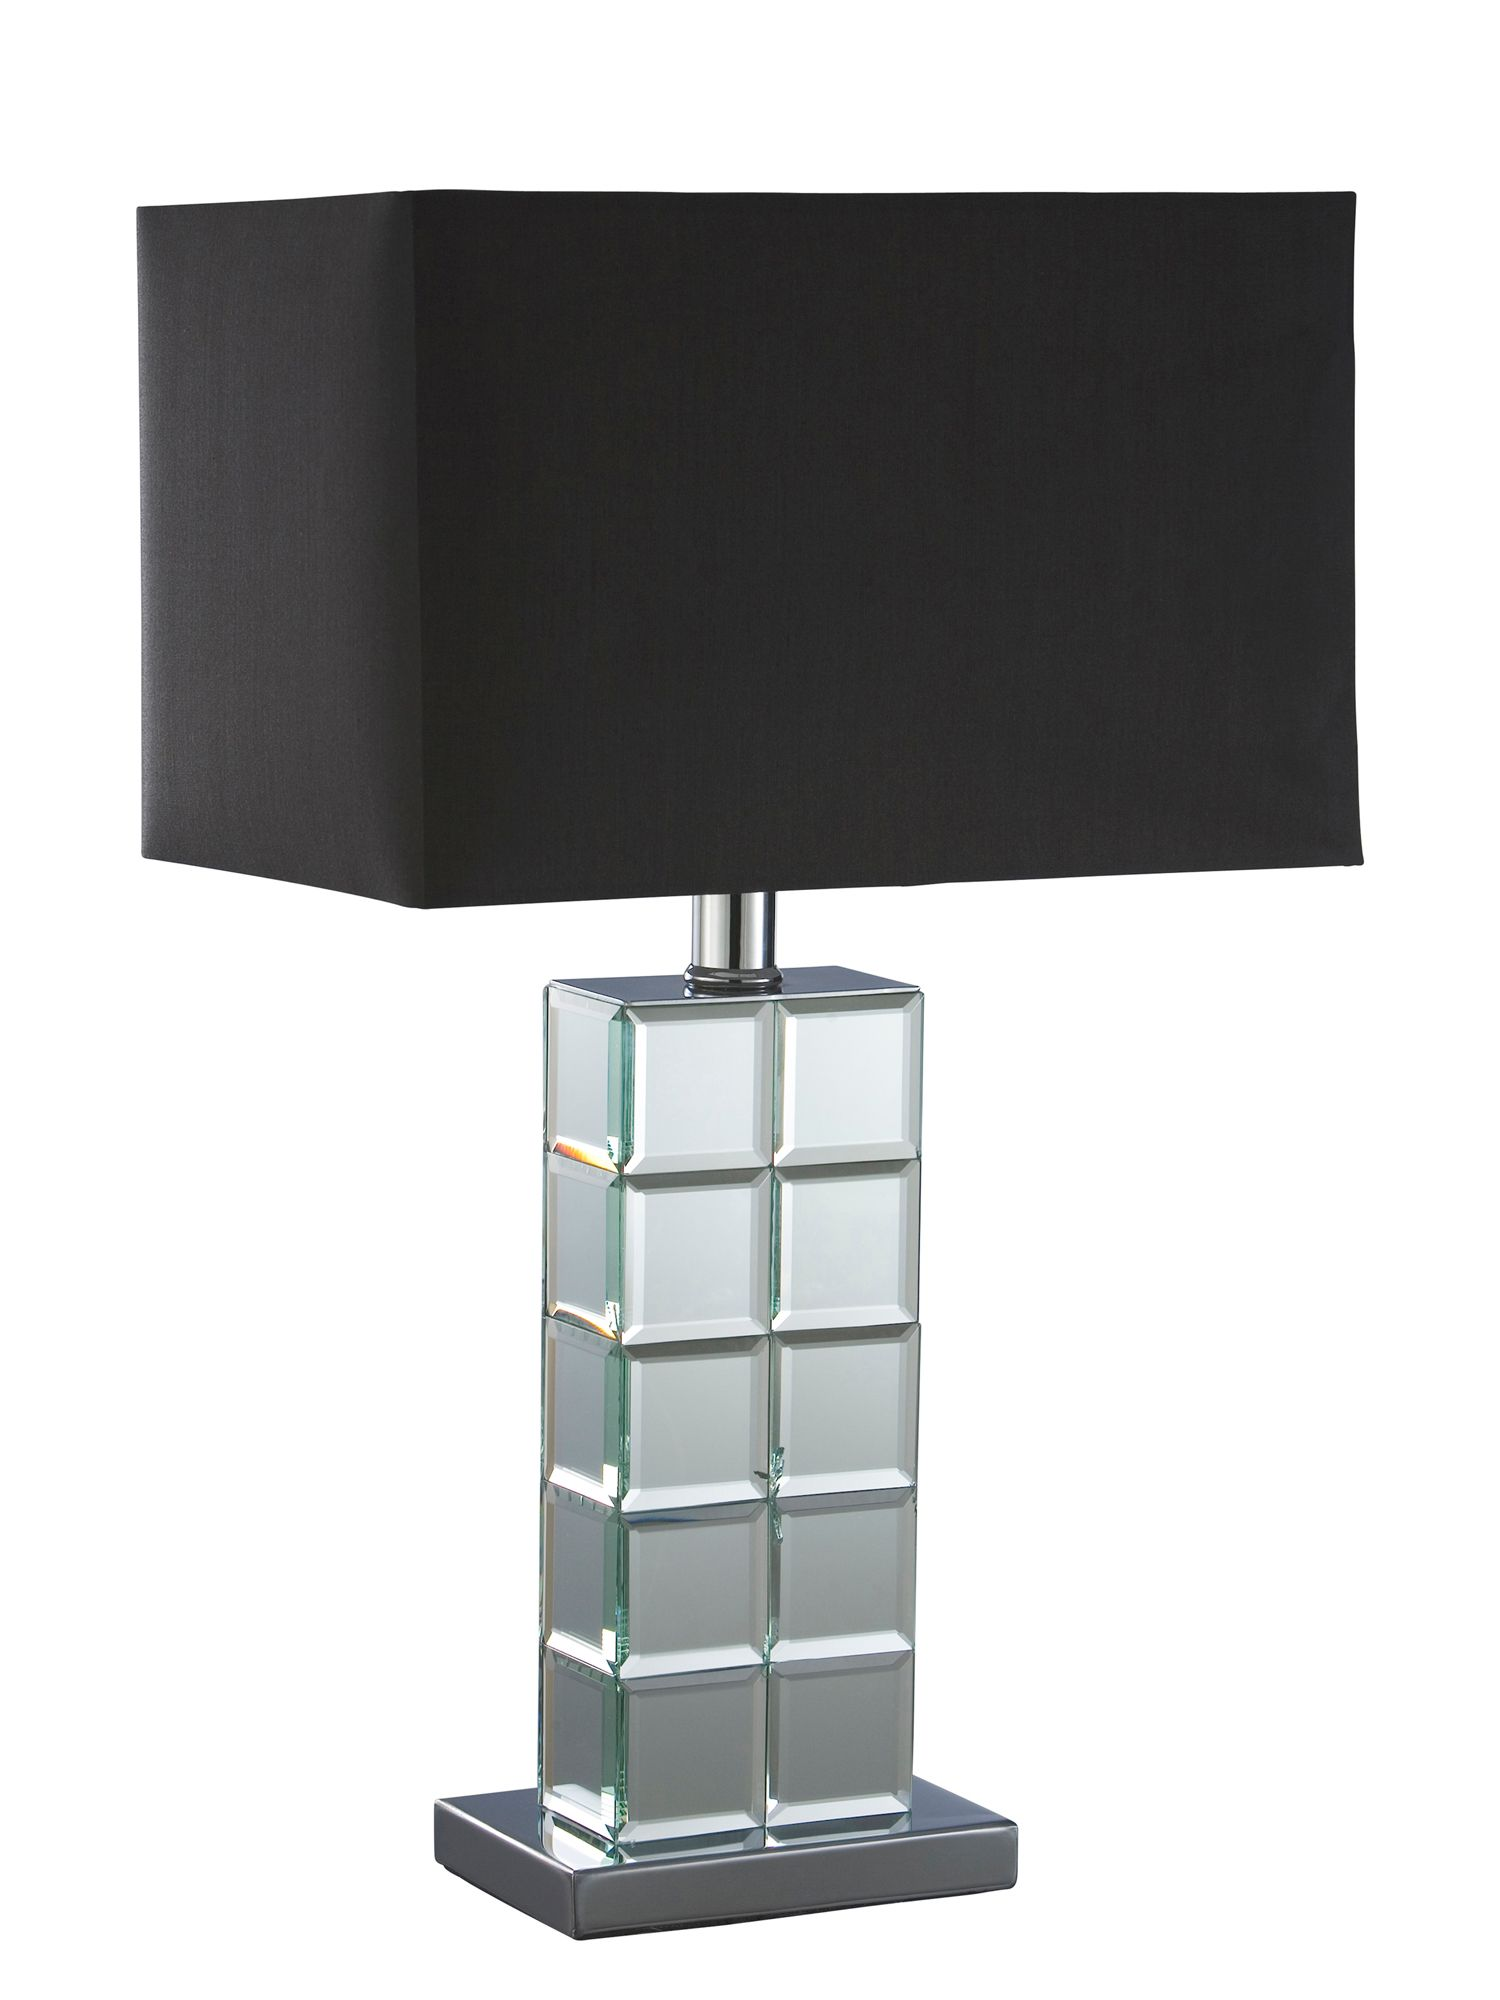 House of Fraser Jasmin table lamp